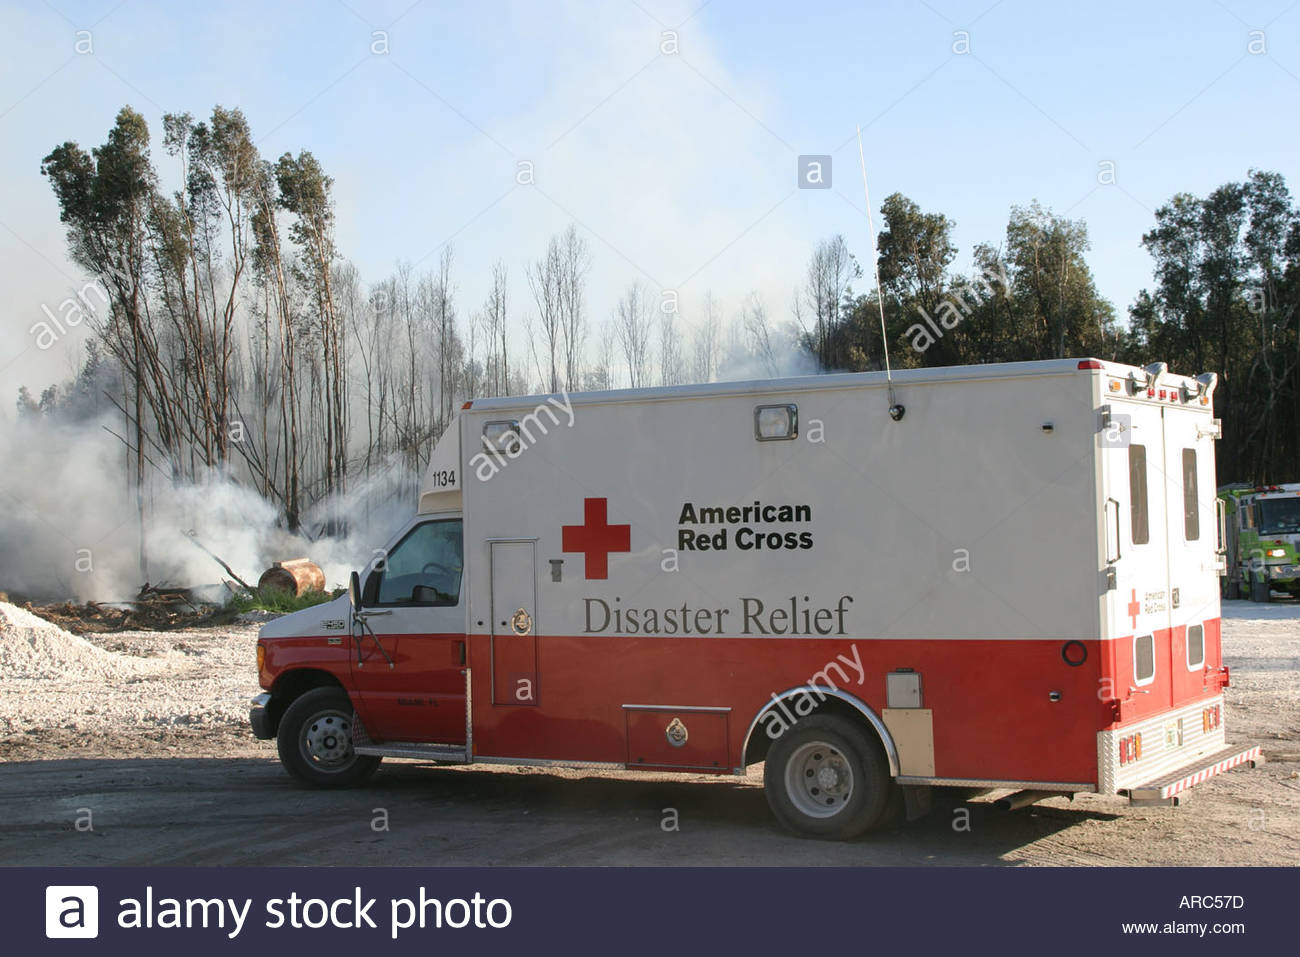 Miami Florida Dade County Everglades dry season smoke trees American Red Cross Disaster Relief Vehicle - Stock Image